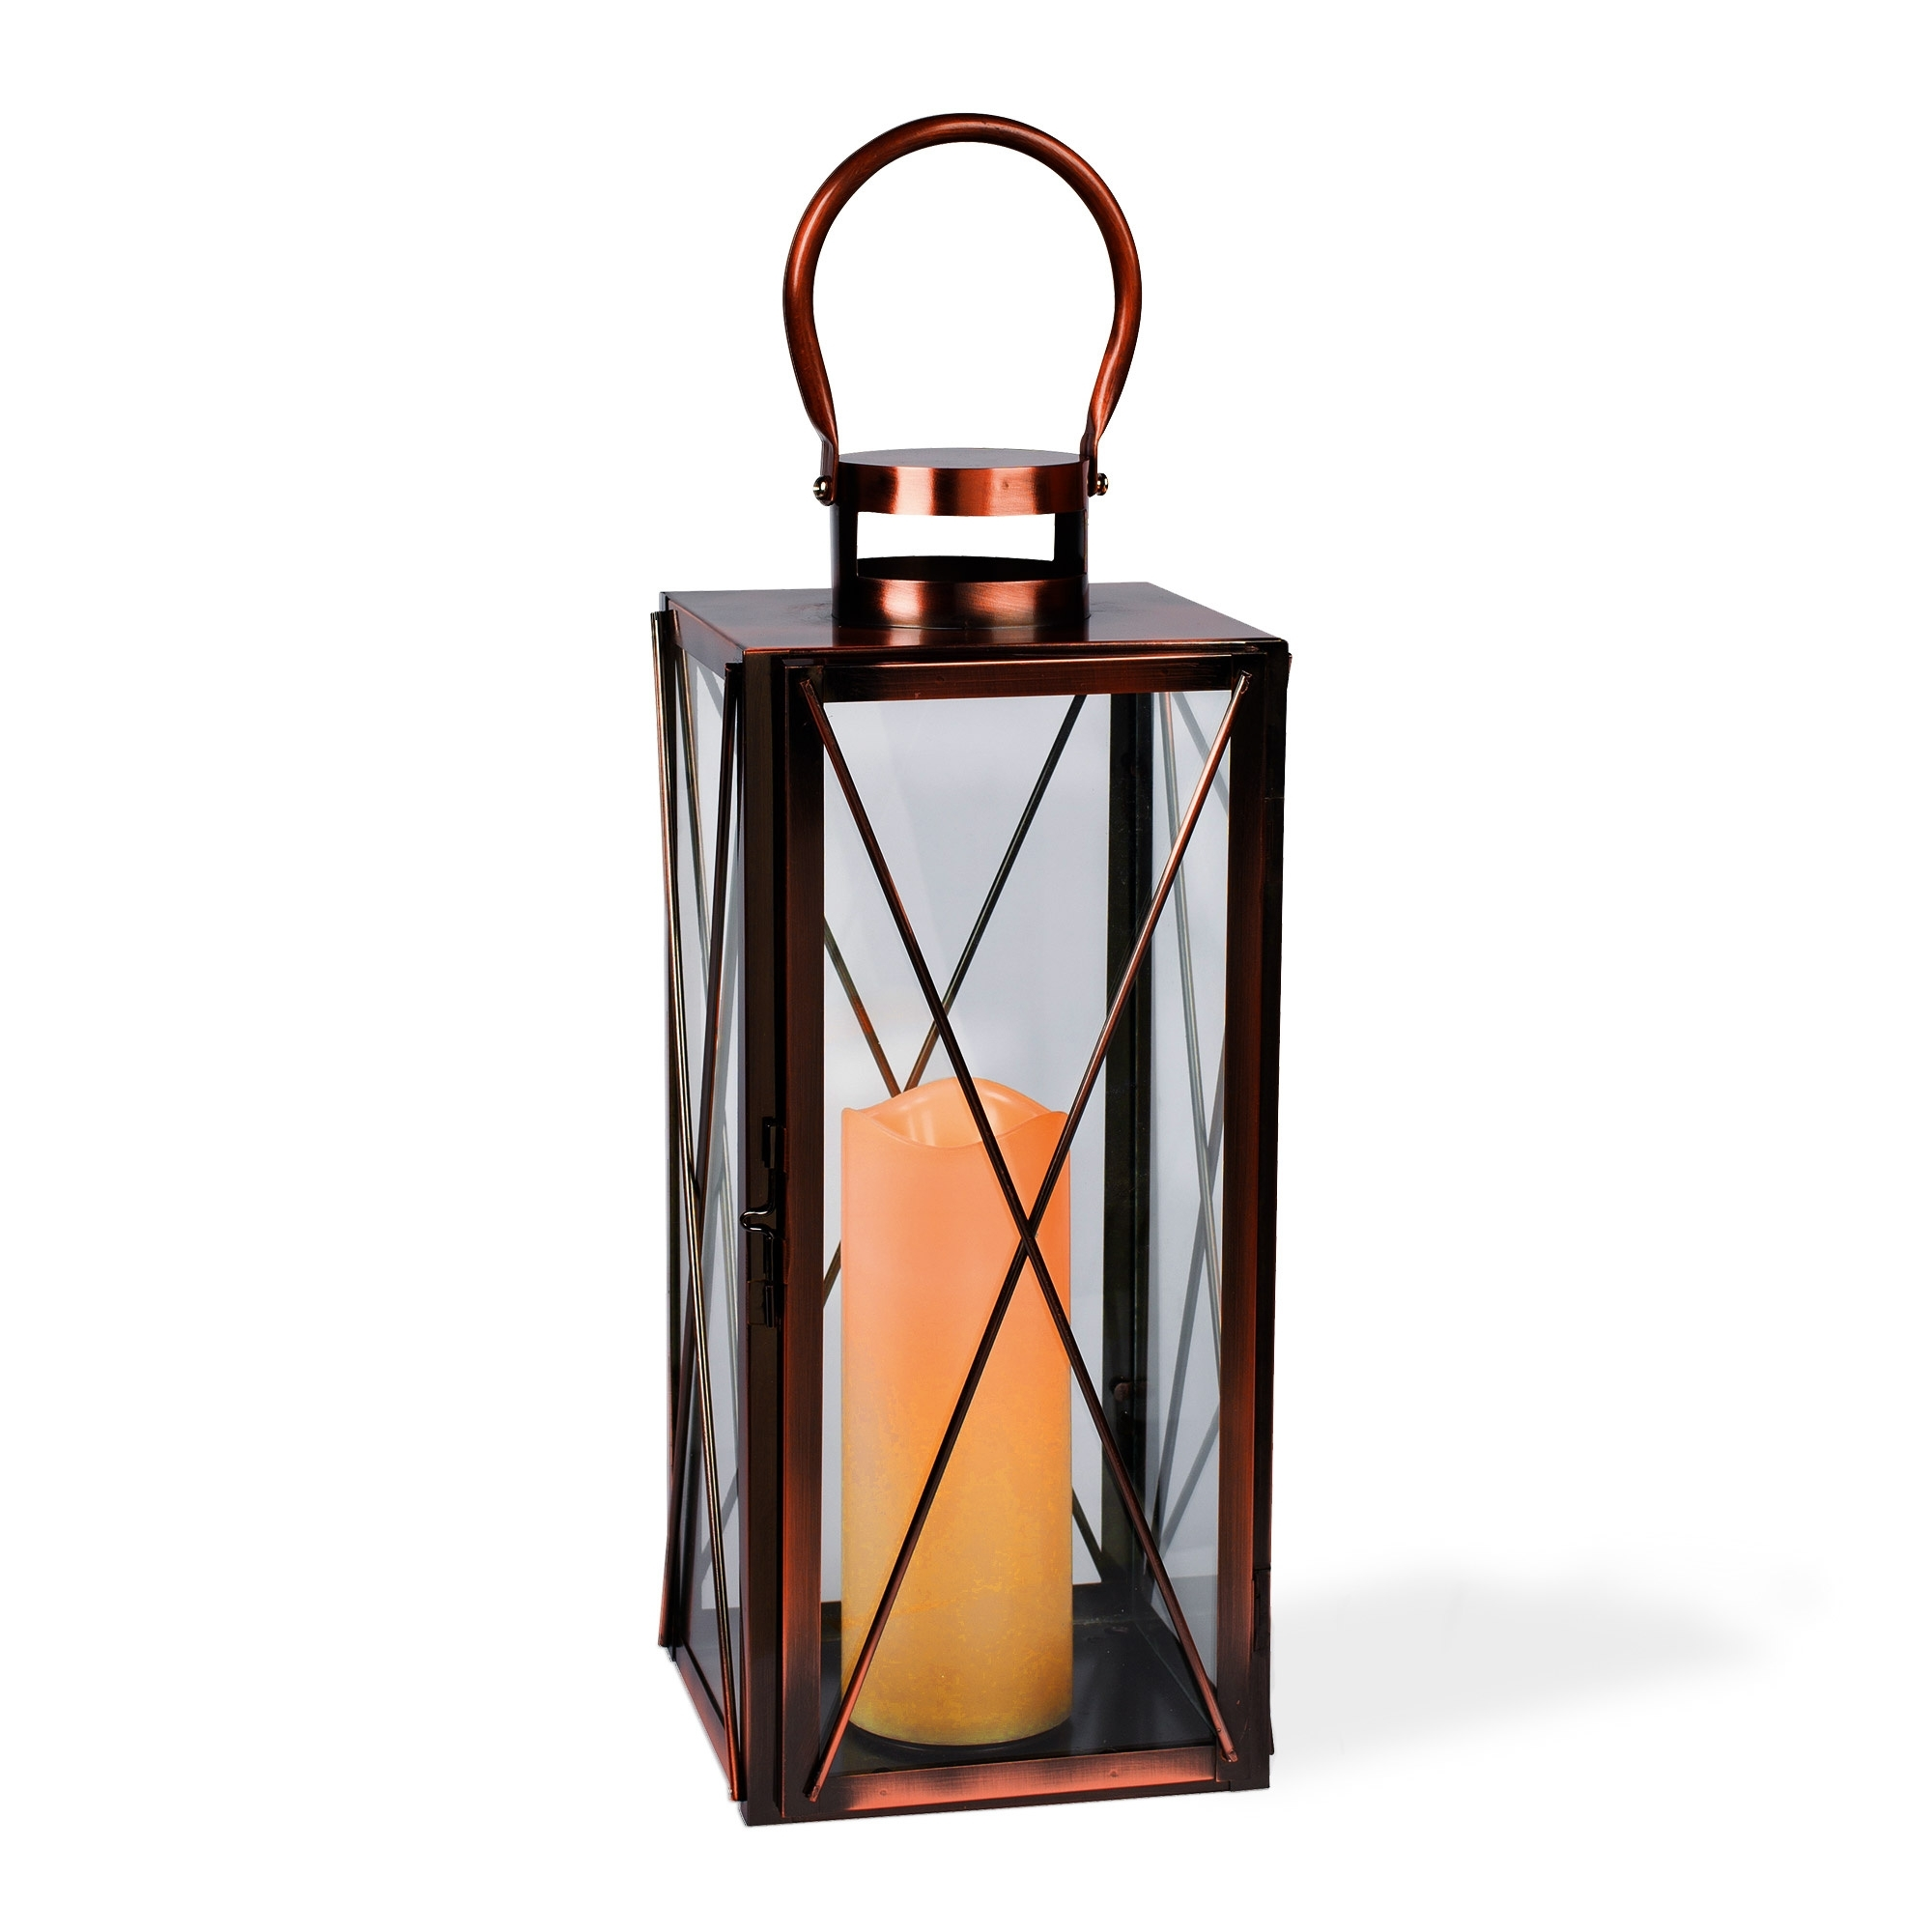 Preferred Interior : Hanging Candle 16Inch Copper Lantern Australia Outdoor Regarding Outdoor Hanging Candle Lanterns At Wholesale (View 16 of 20)